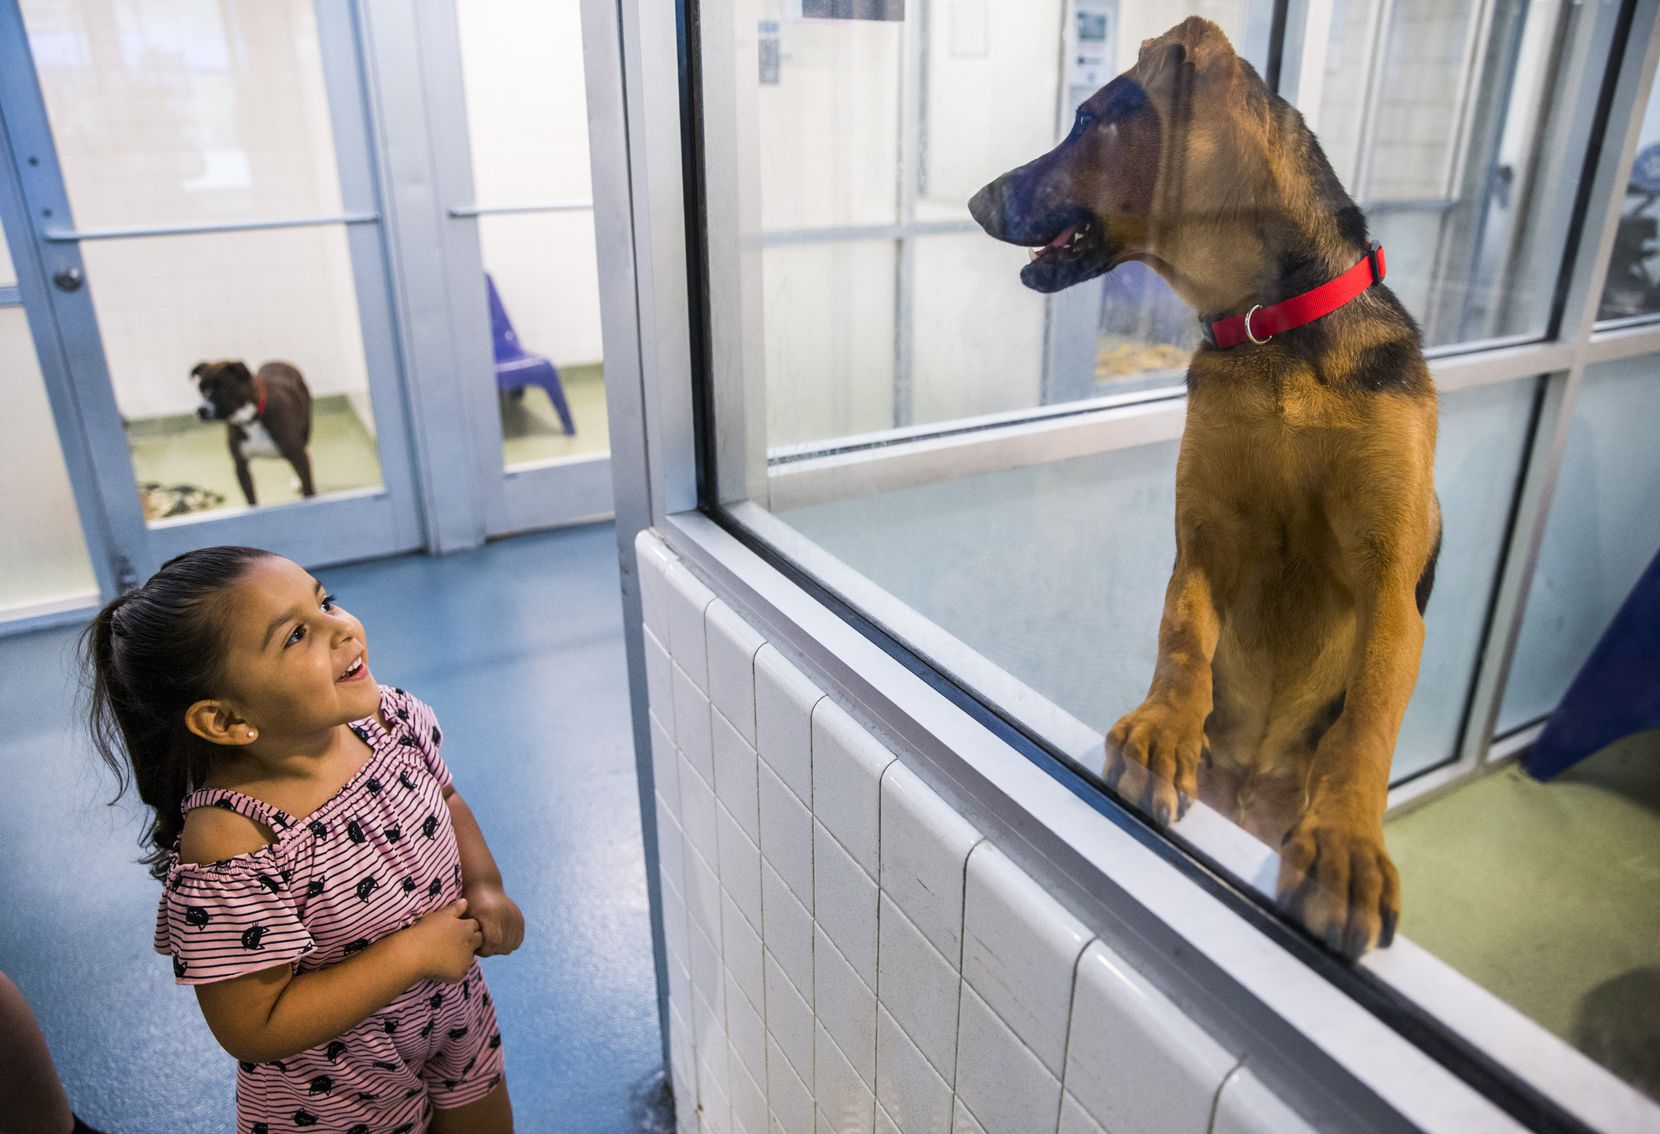 Kallie Guerrero, 3, looked at a dog to potentially adopt last summer at Dallas Animal Services' Main Shelter in Dallas. Because of an urgent need for fosters and adopters to avoid having to euthanize large dogs, DAS has made all adoptions free until further notice, and no experience is required to foster a dog.